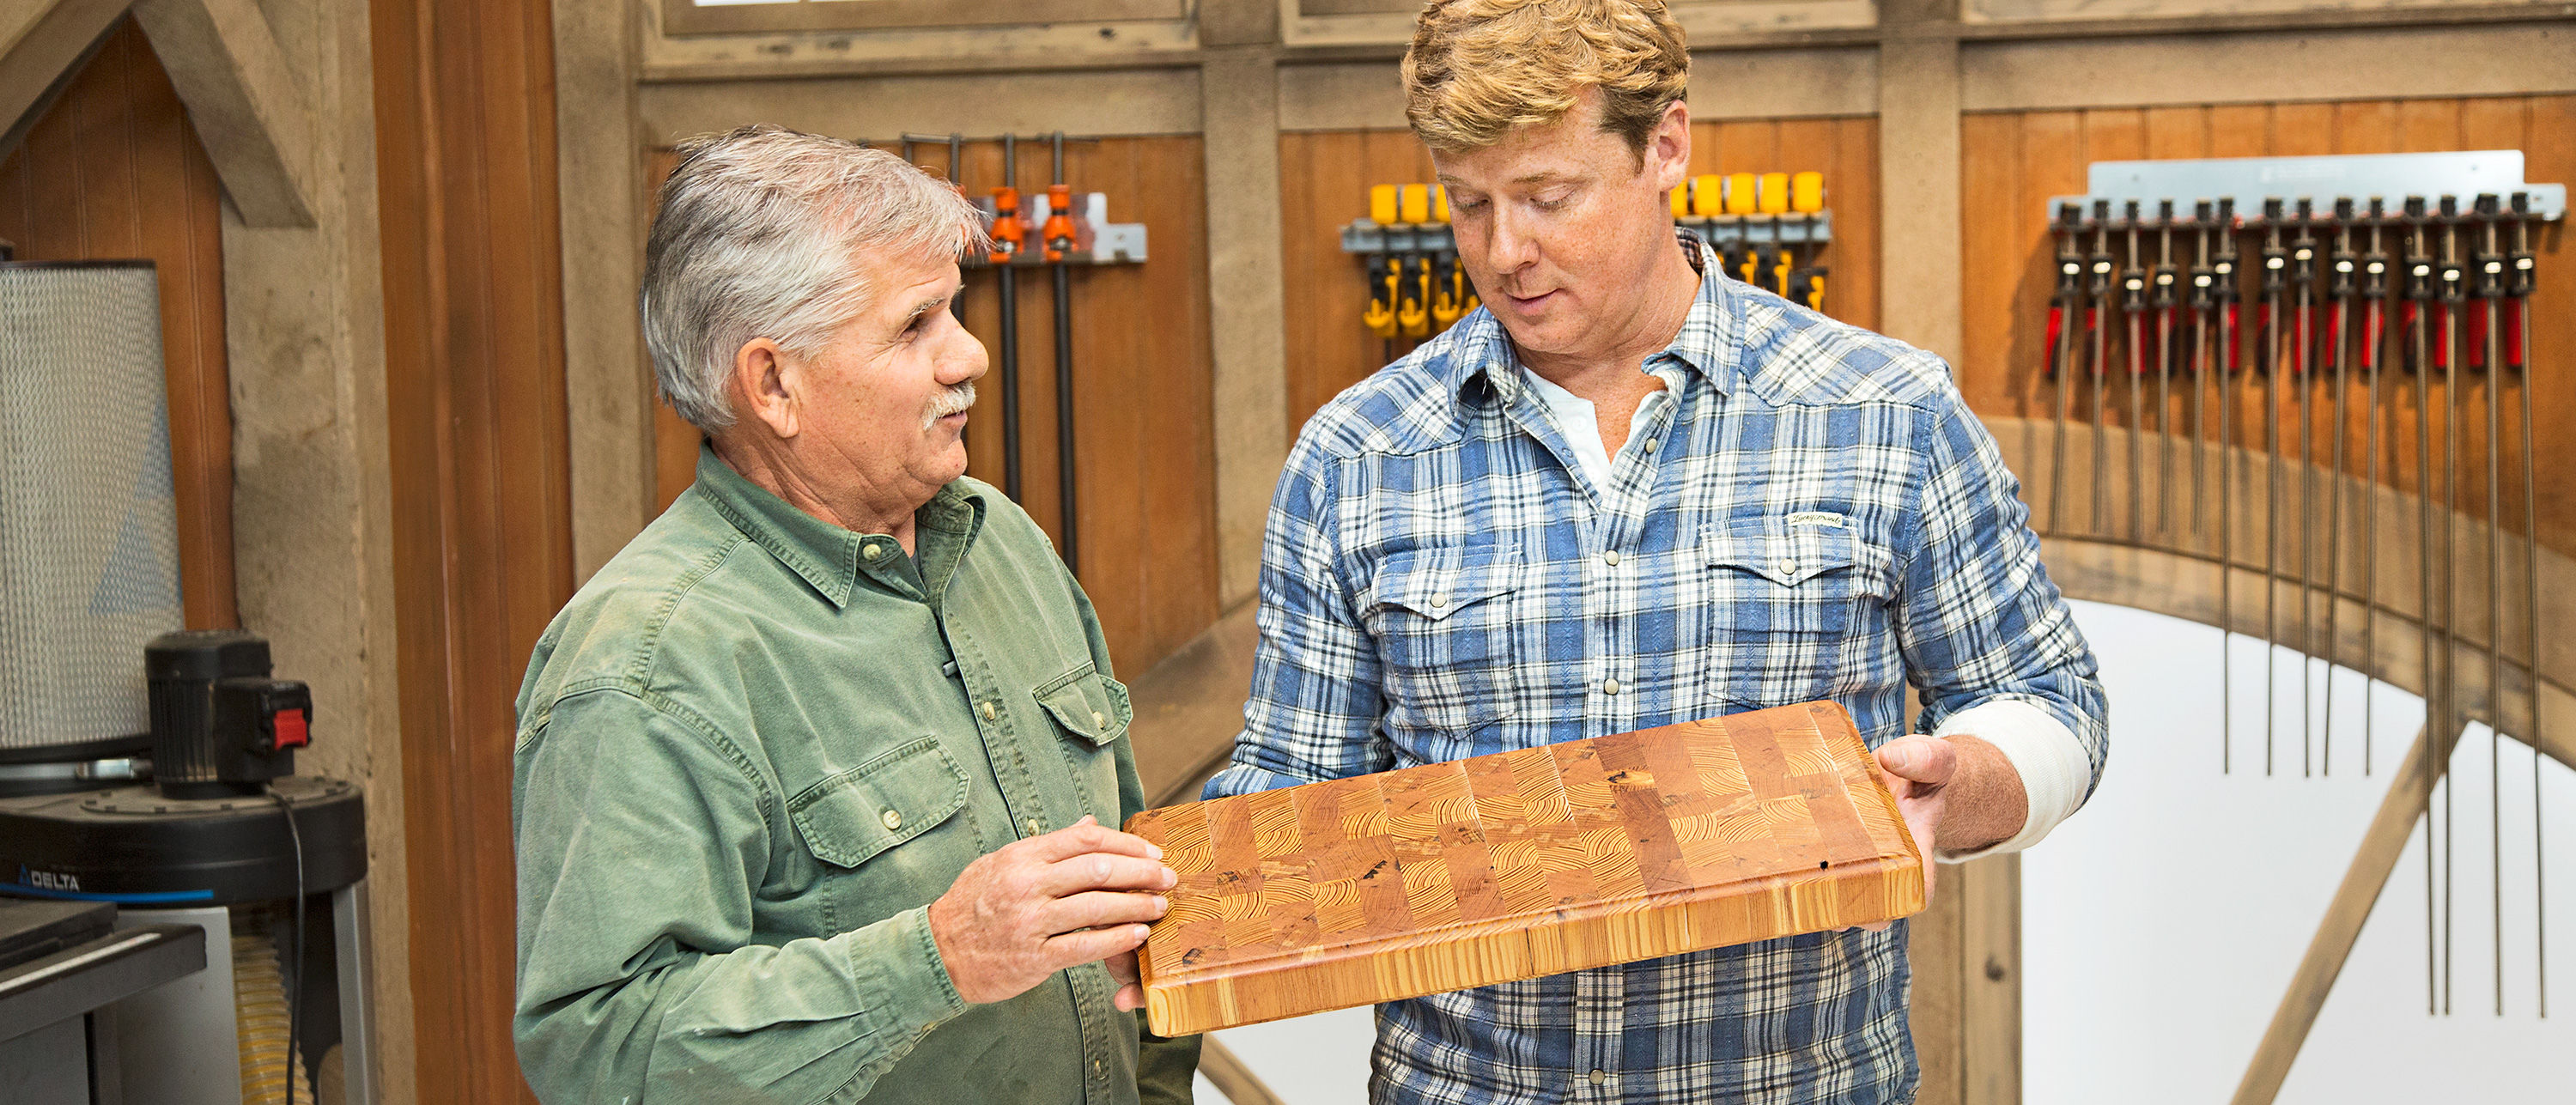 Two people holding an end grain cutting board made from scrap wood.